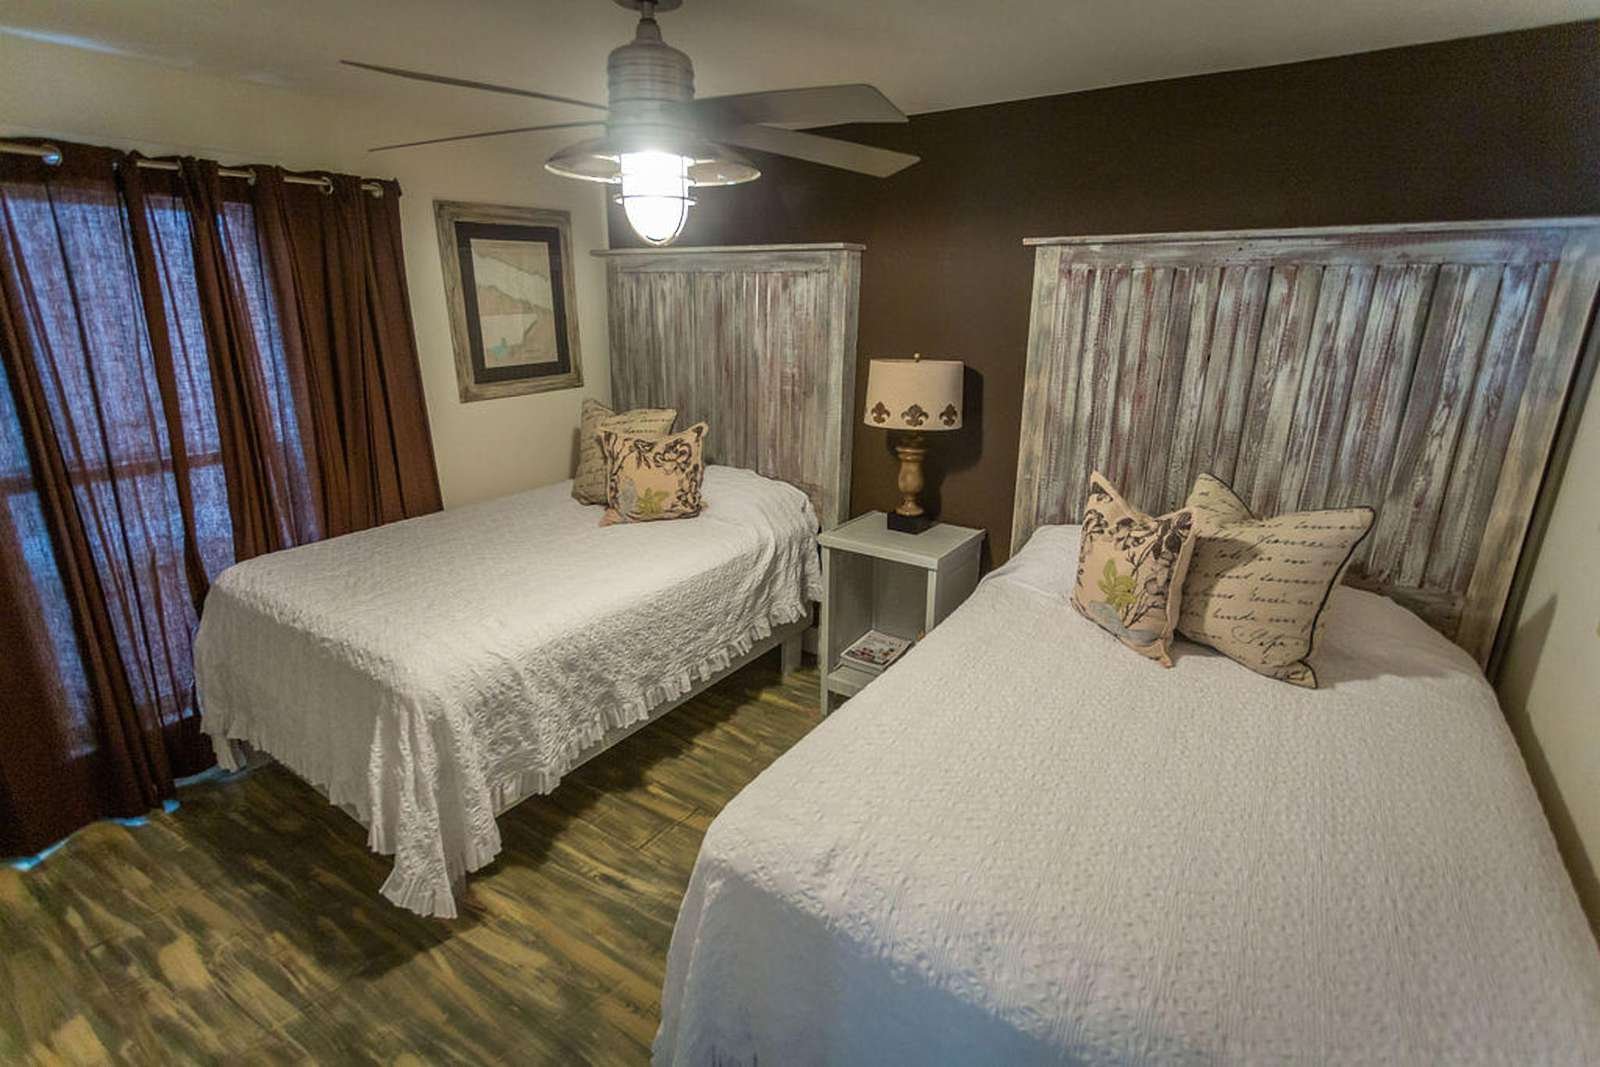 Bedroom #5 - two queen beds/ share bath with bedroom #4